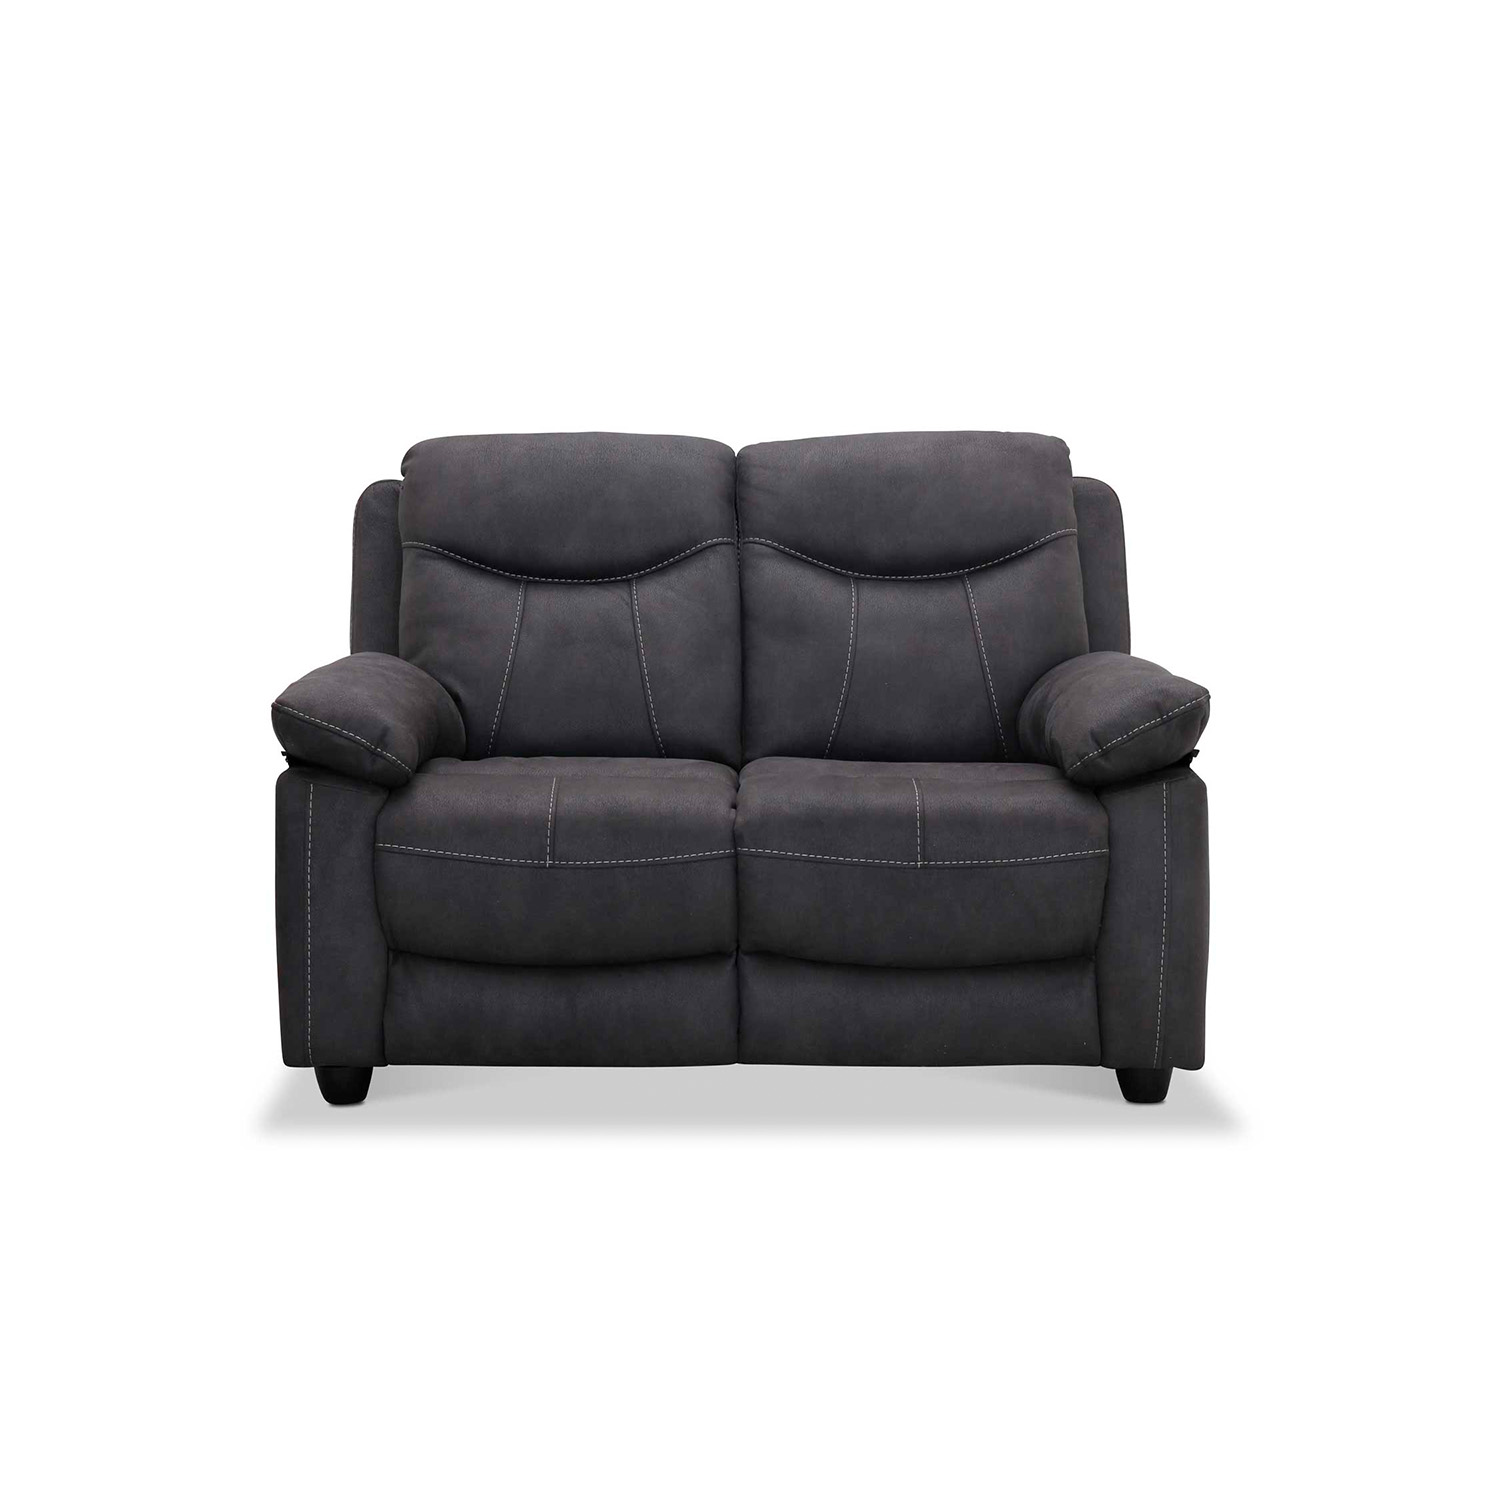 Image of   Boston 2 personers sofa, grå stof